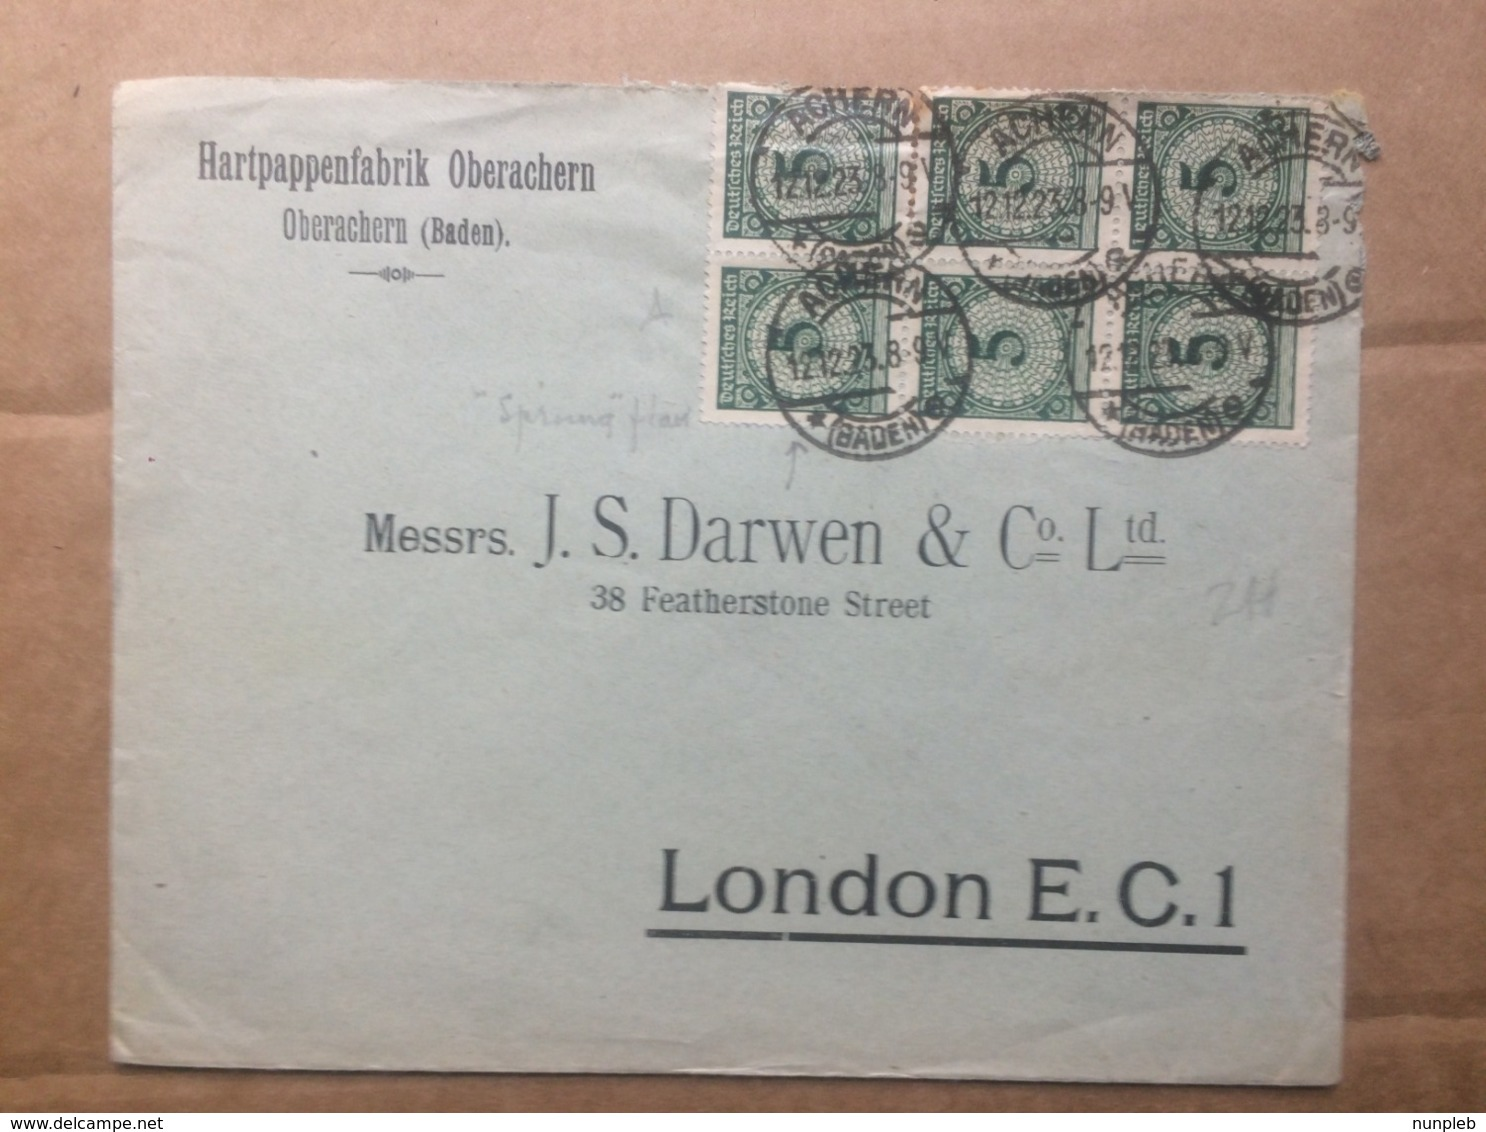 GERMANY 1923 Cover Achern To London Early Use Of Renten Pfennige Issue 17th Dec. - Allemagne